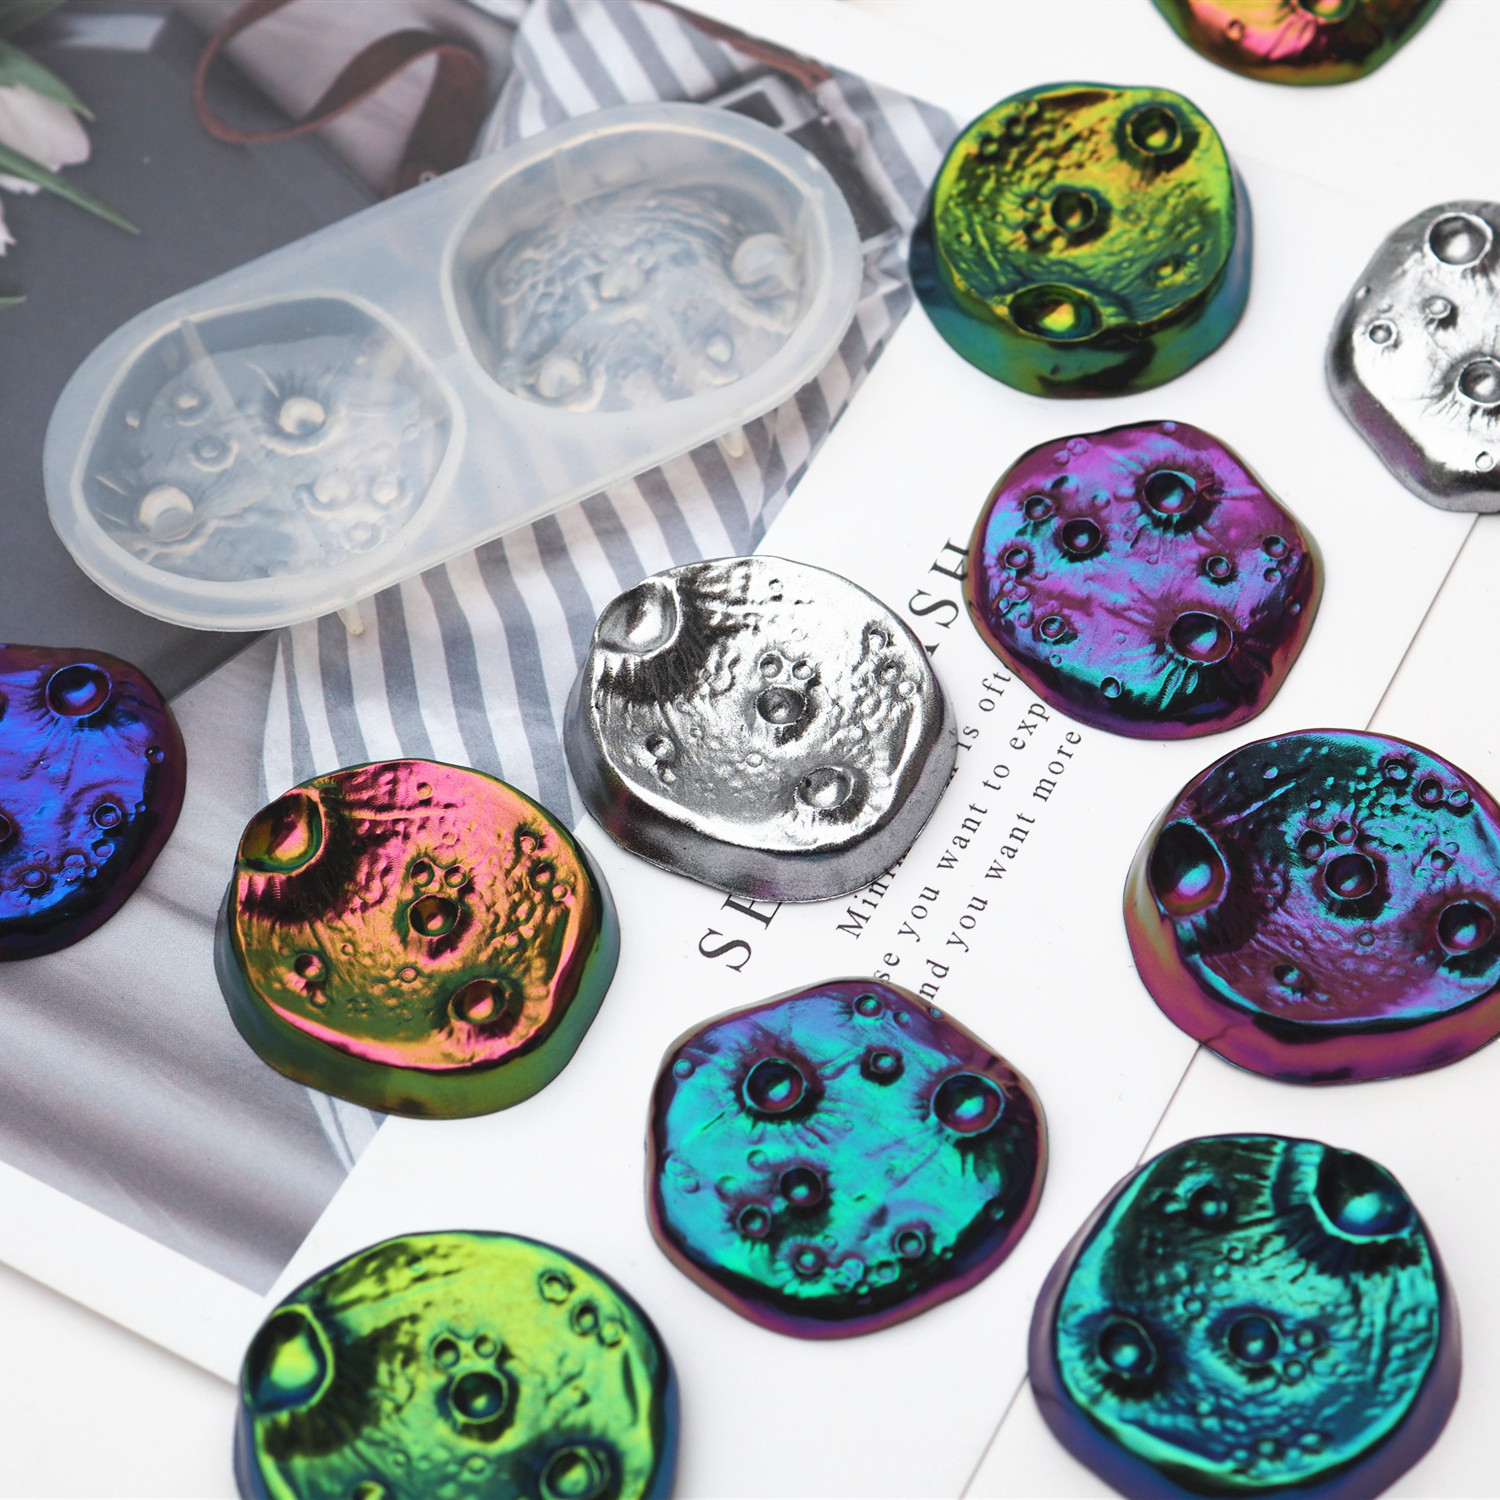 DIY Epoxy UV Resin Crater Hole Planet Surface Crater Abrasive Aroma Gypsum Mold Jewelry Molds